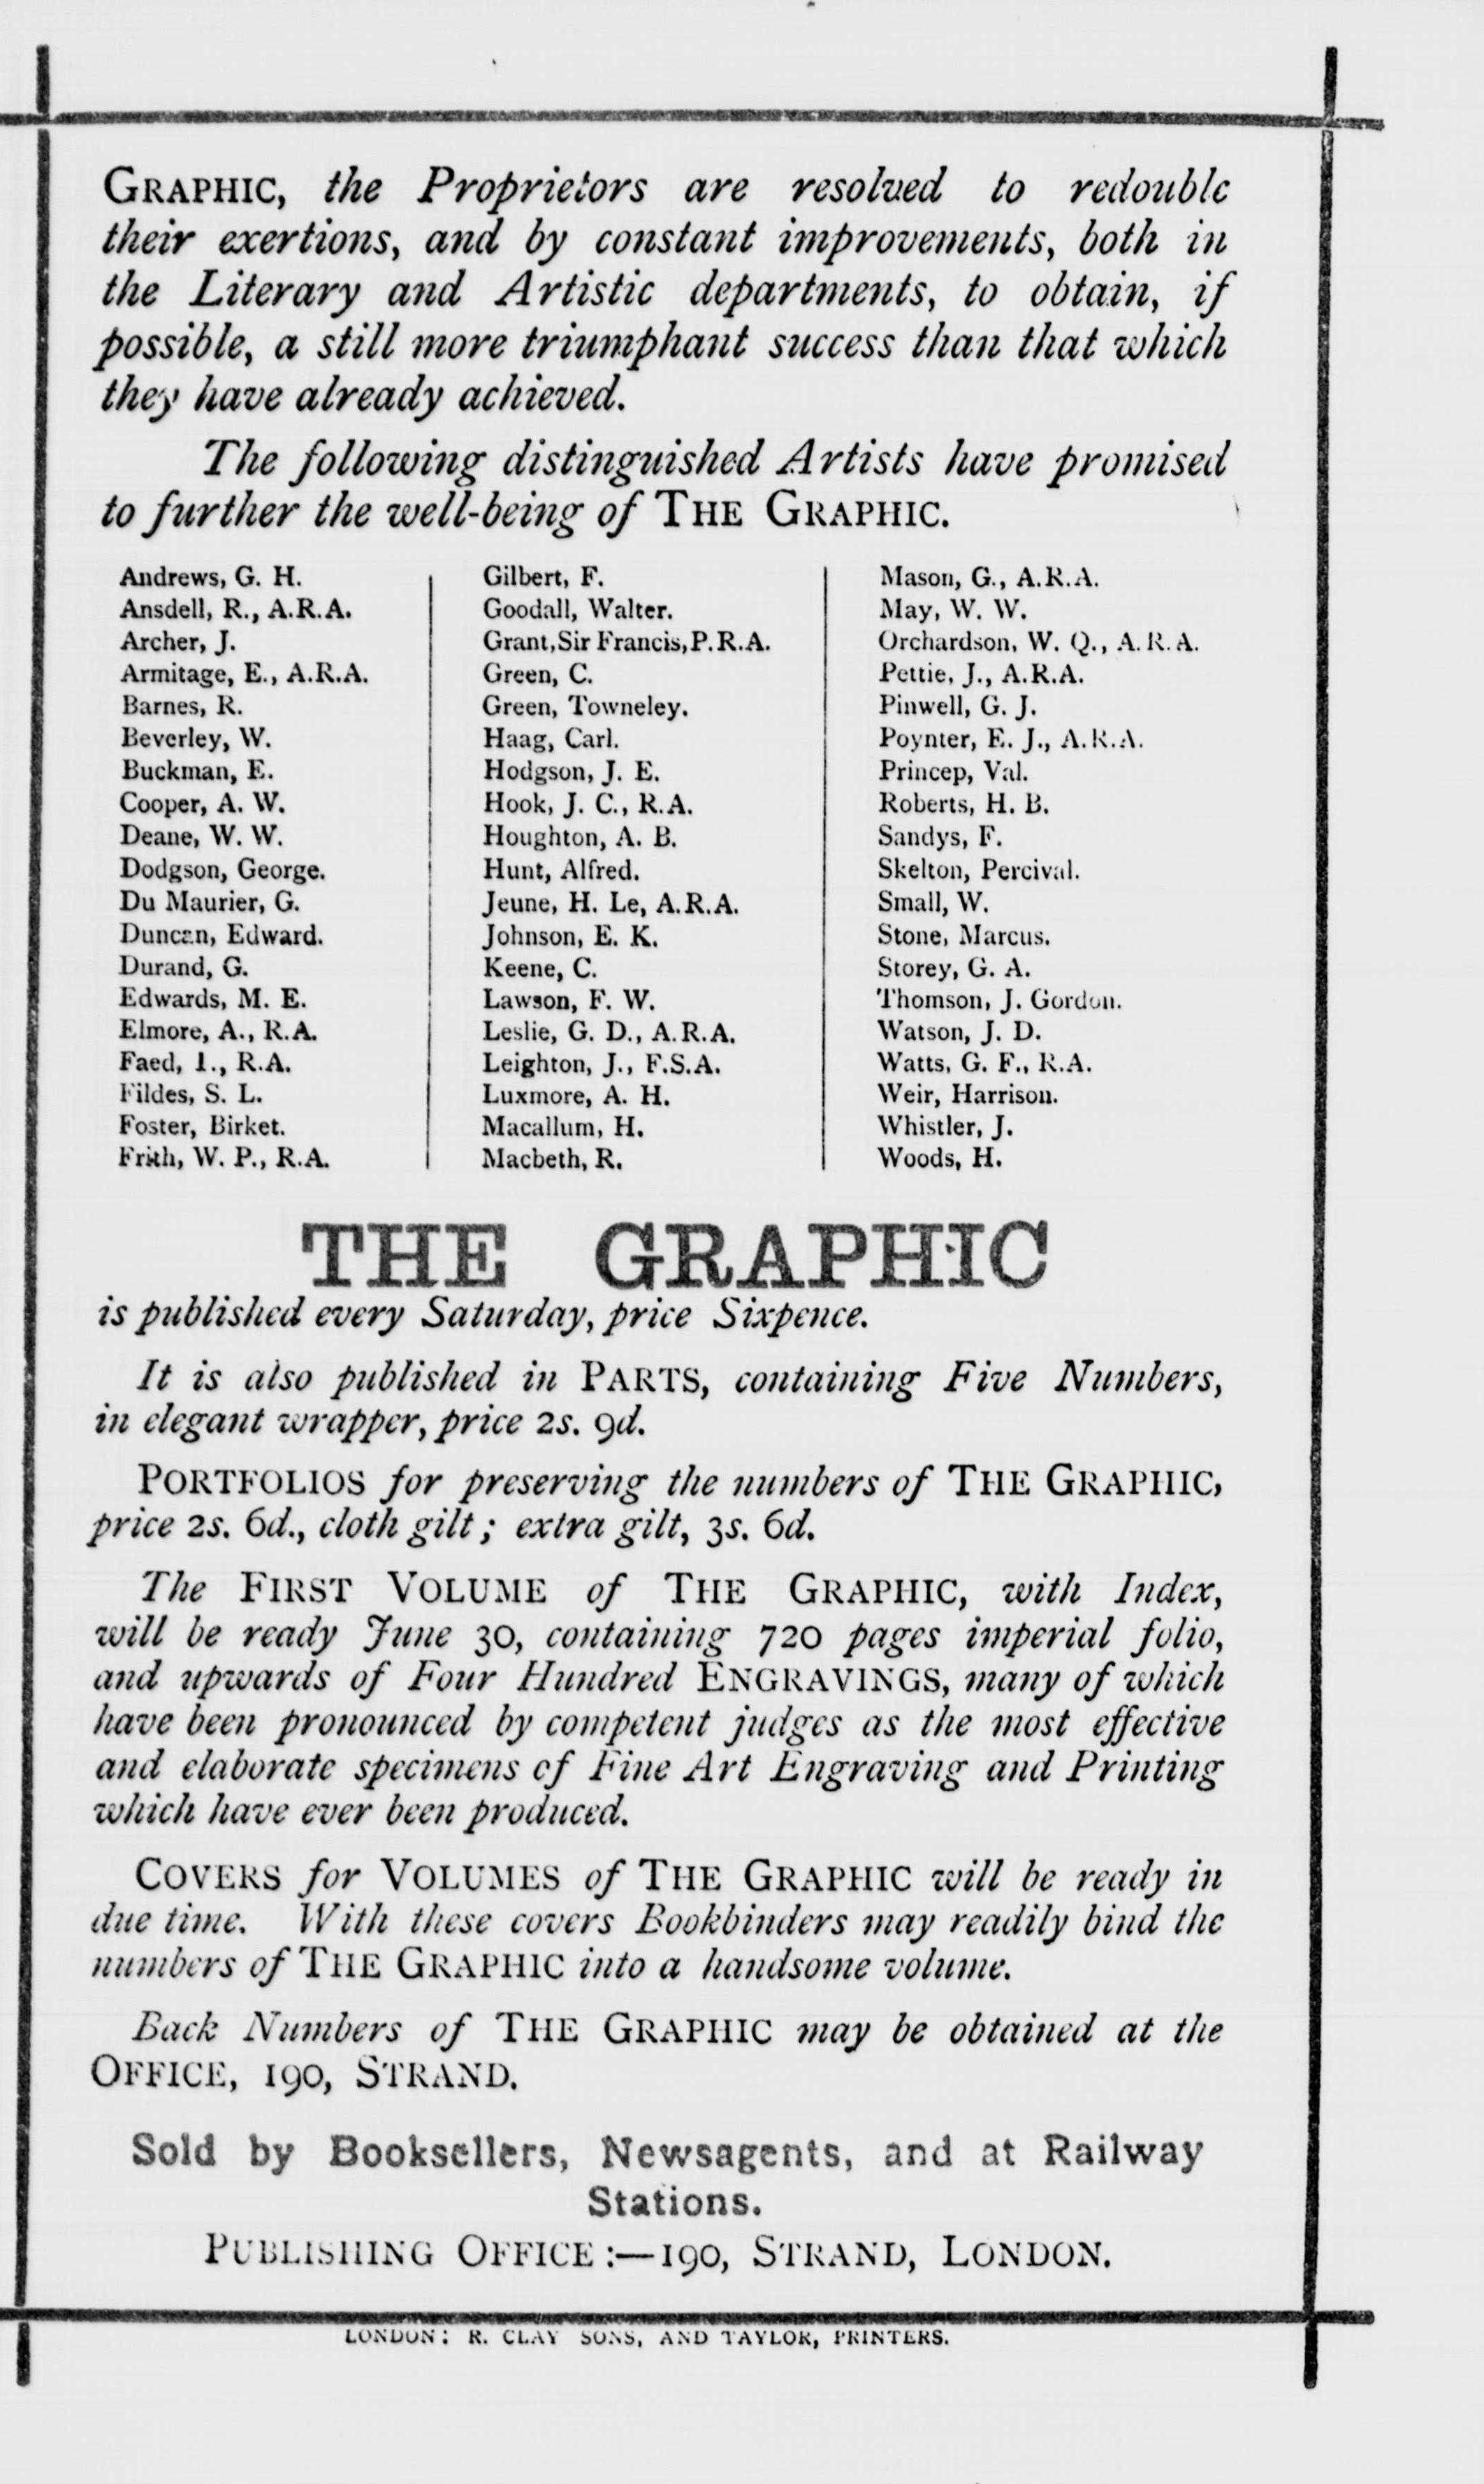 Figure 25a Advertisement for the early Graphic, North British Review, Jan. 1871